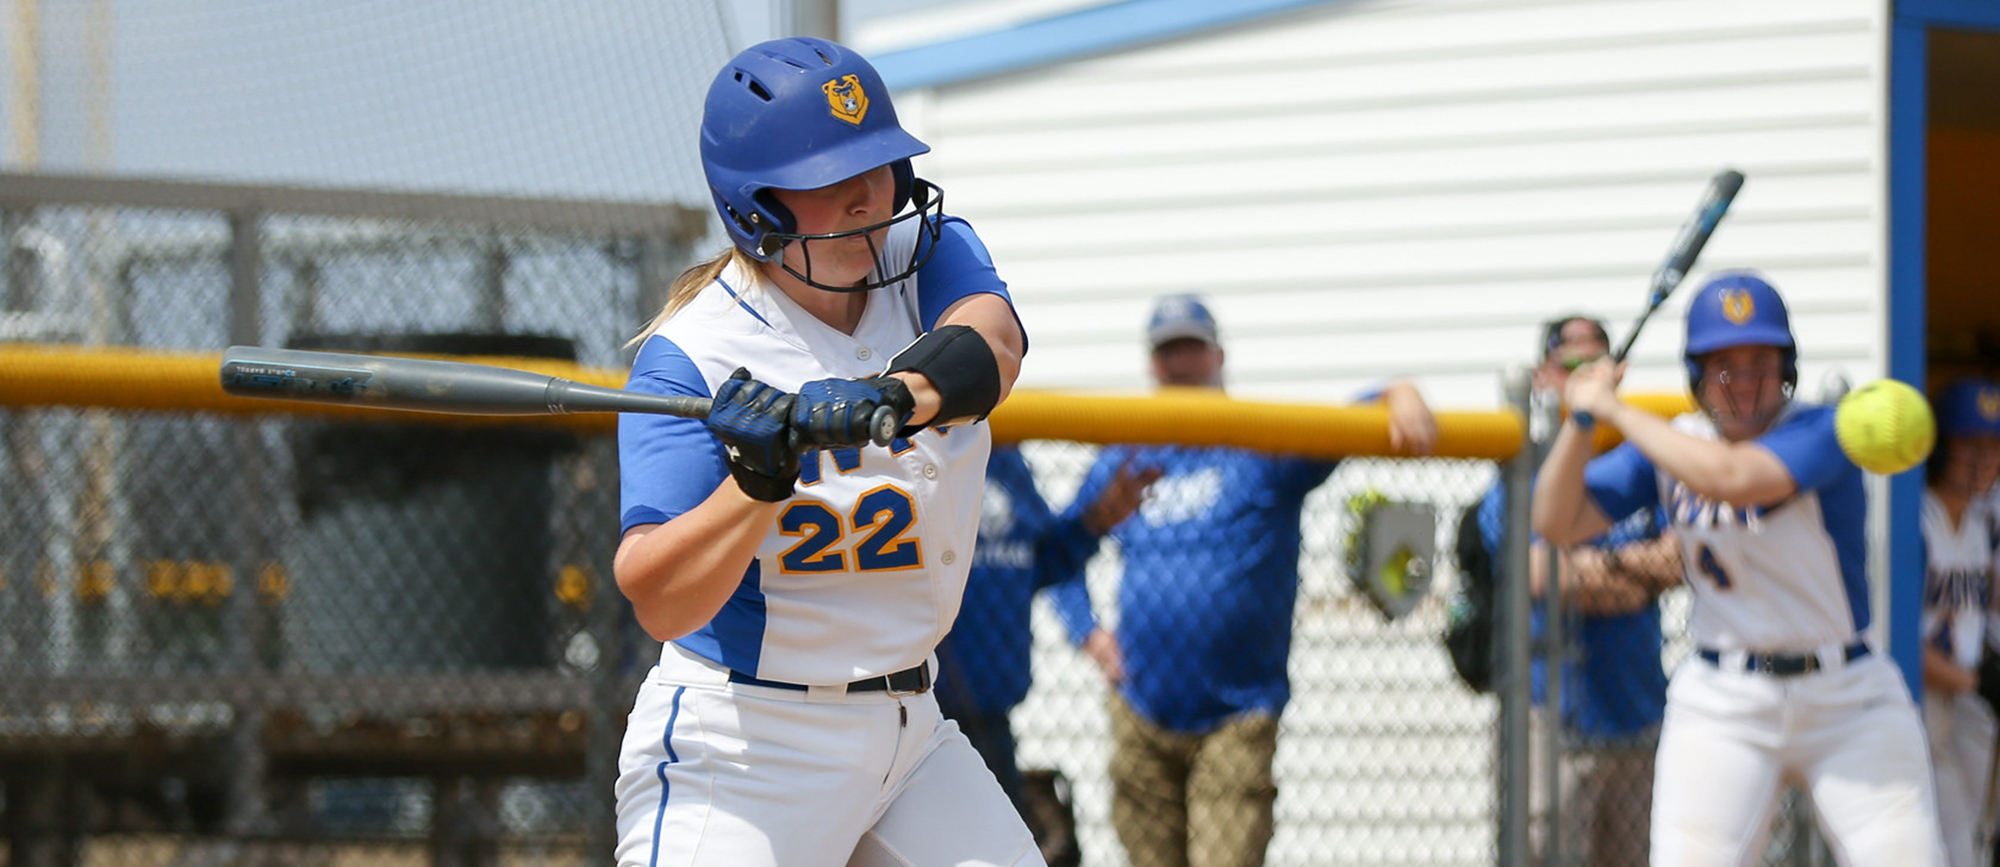 Aimee Kistner hit a three-run double in the second game of Western New England's doubleheader split with Gordon on Saturday. (Photo by Chris Marion)